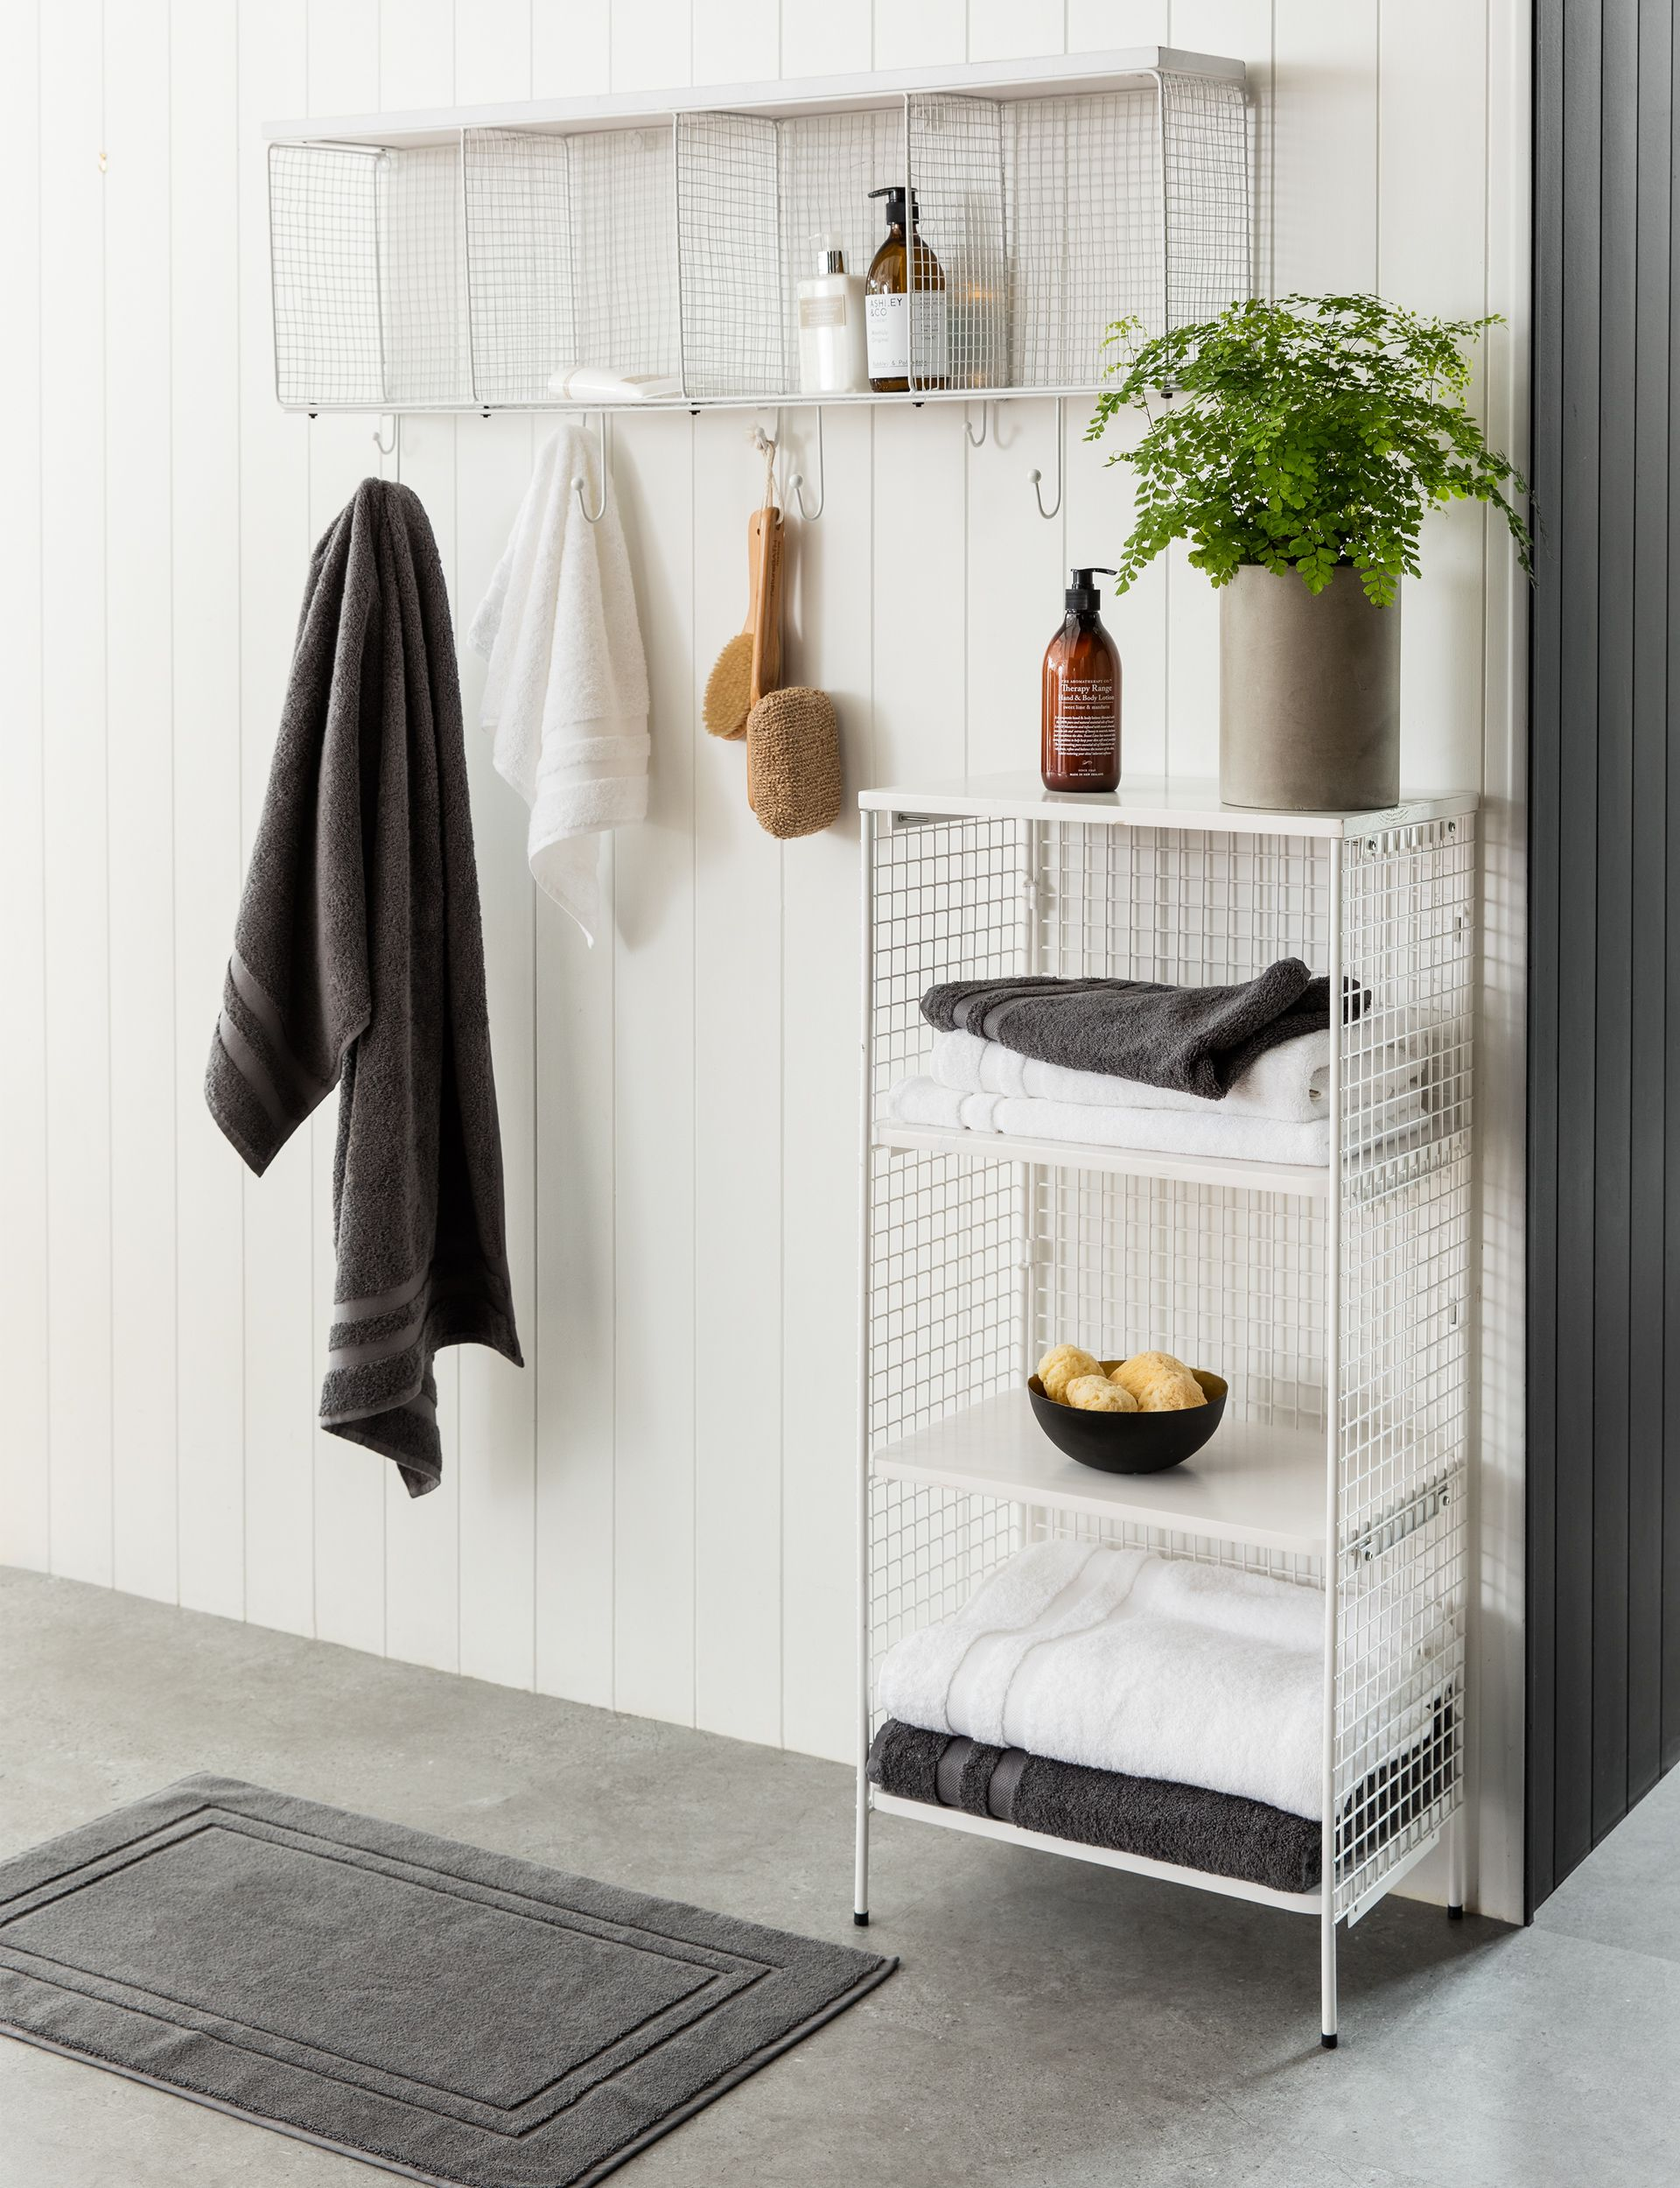 How to achieve a beautiful functional bathroom - Homes To Love